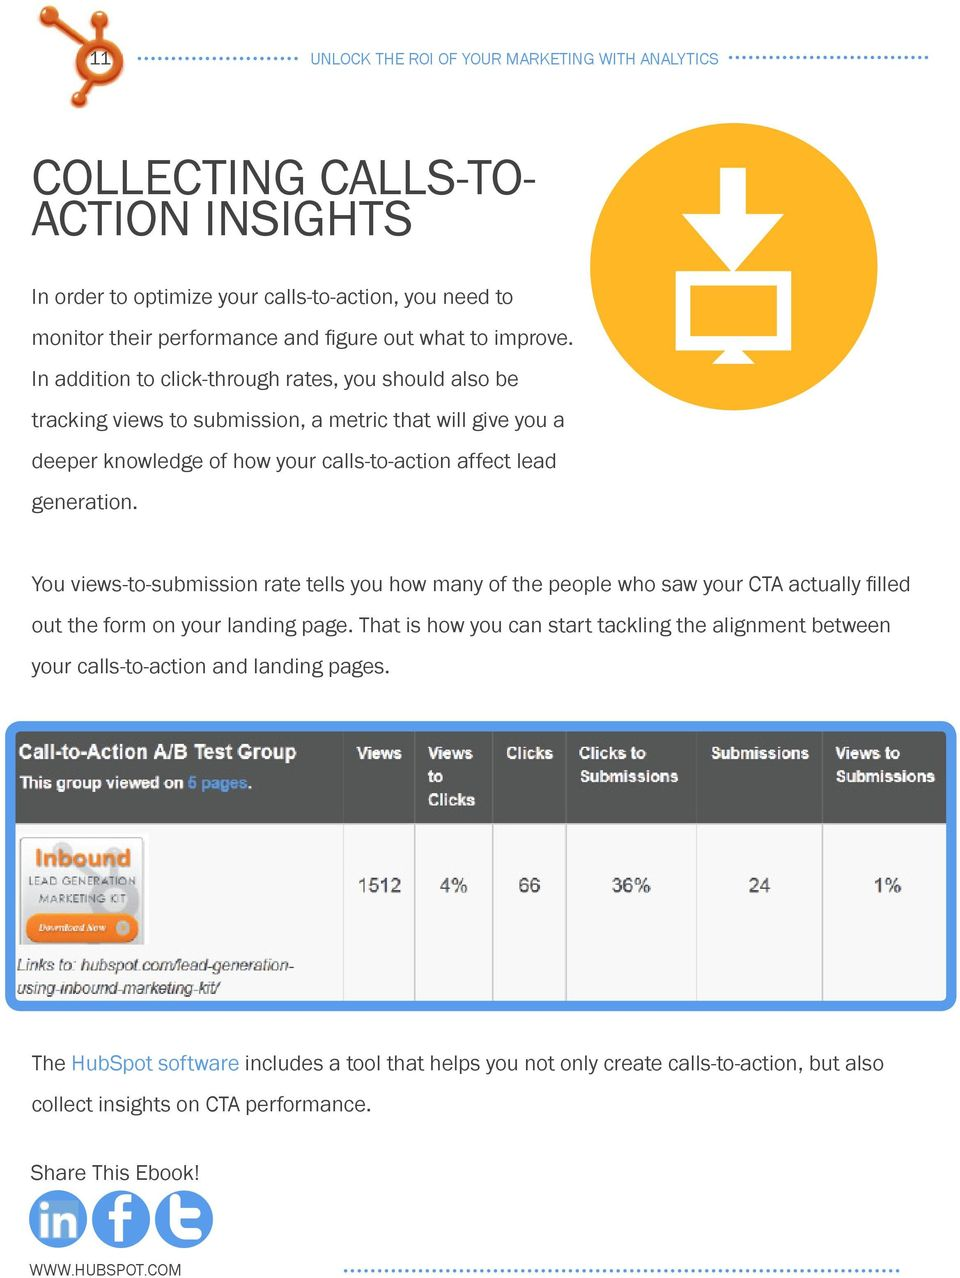 your calls-to-action affect lead generation. You views-to-submission rate tells you how many of the people who saw your CTA actually filled out the form on your landing page.